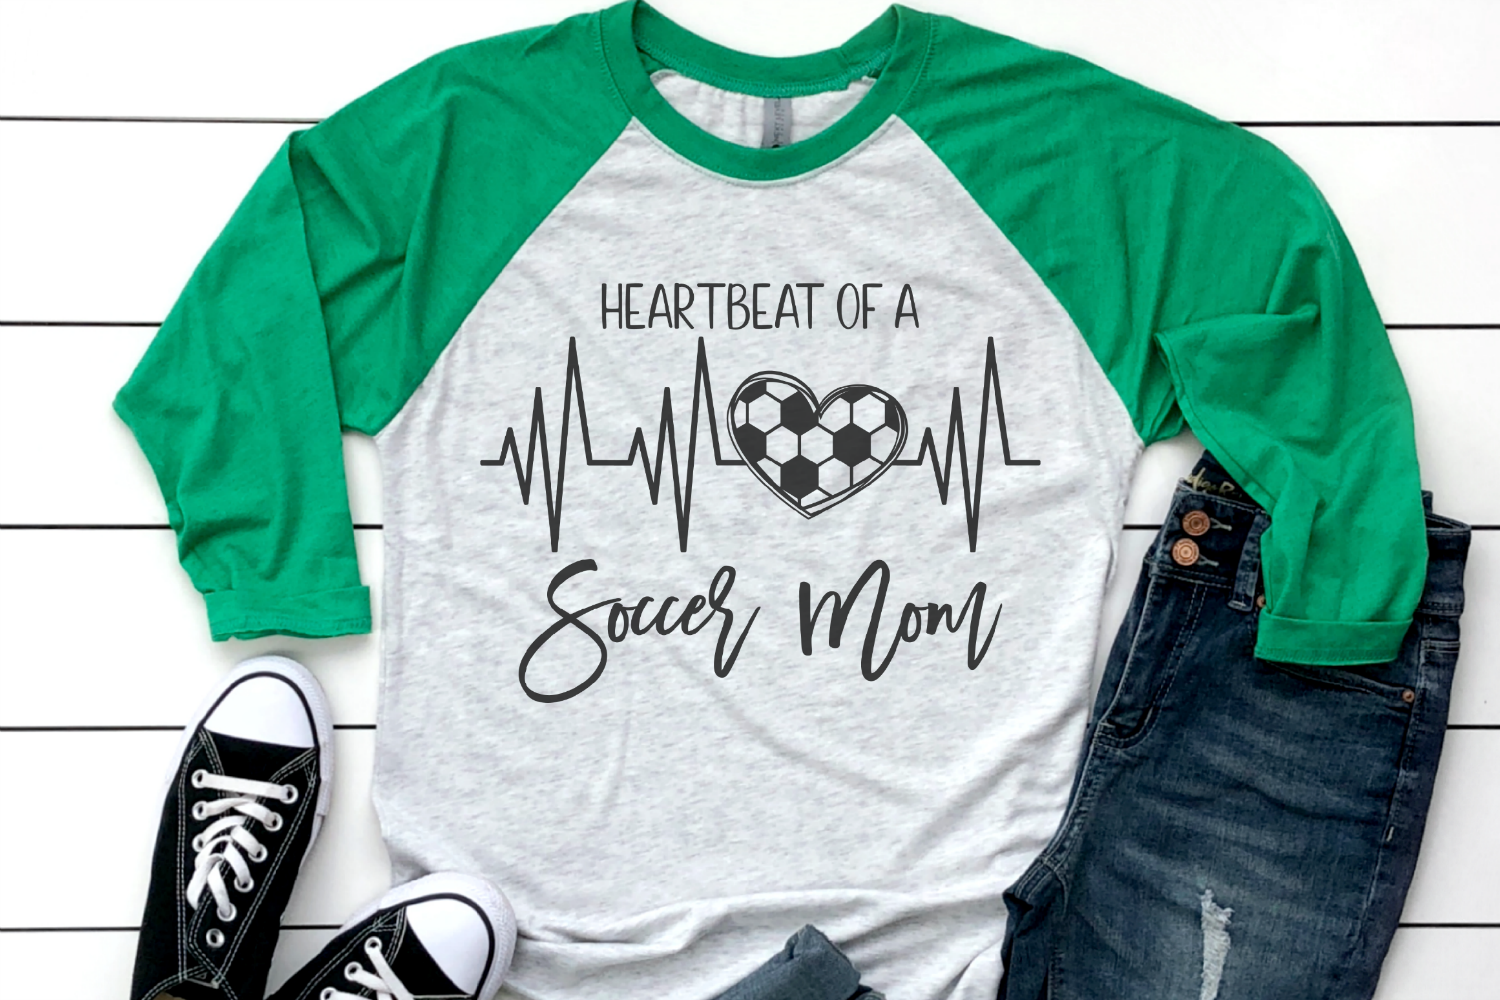 Soccer Mom - Heartbeat Of A Soccer Mom SVG example image 2